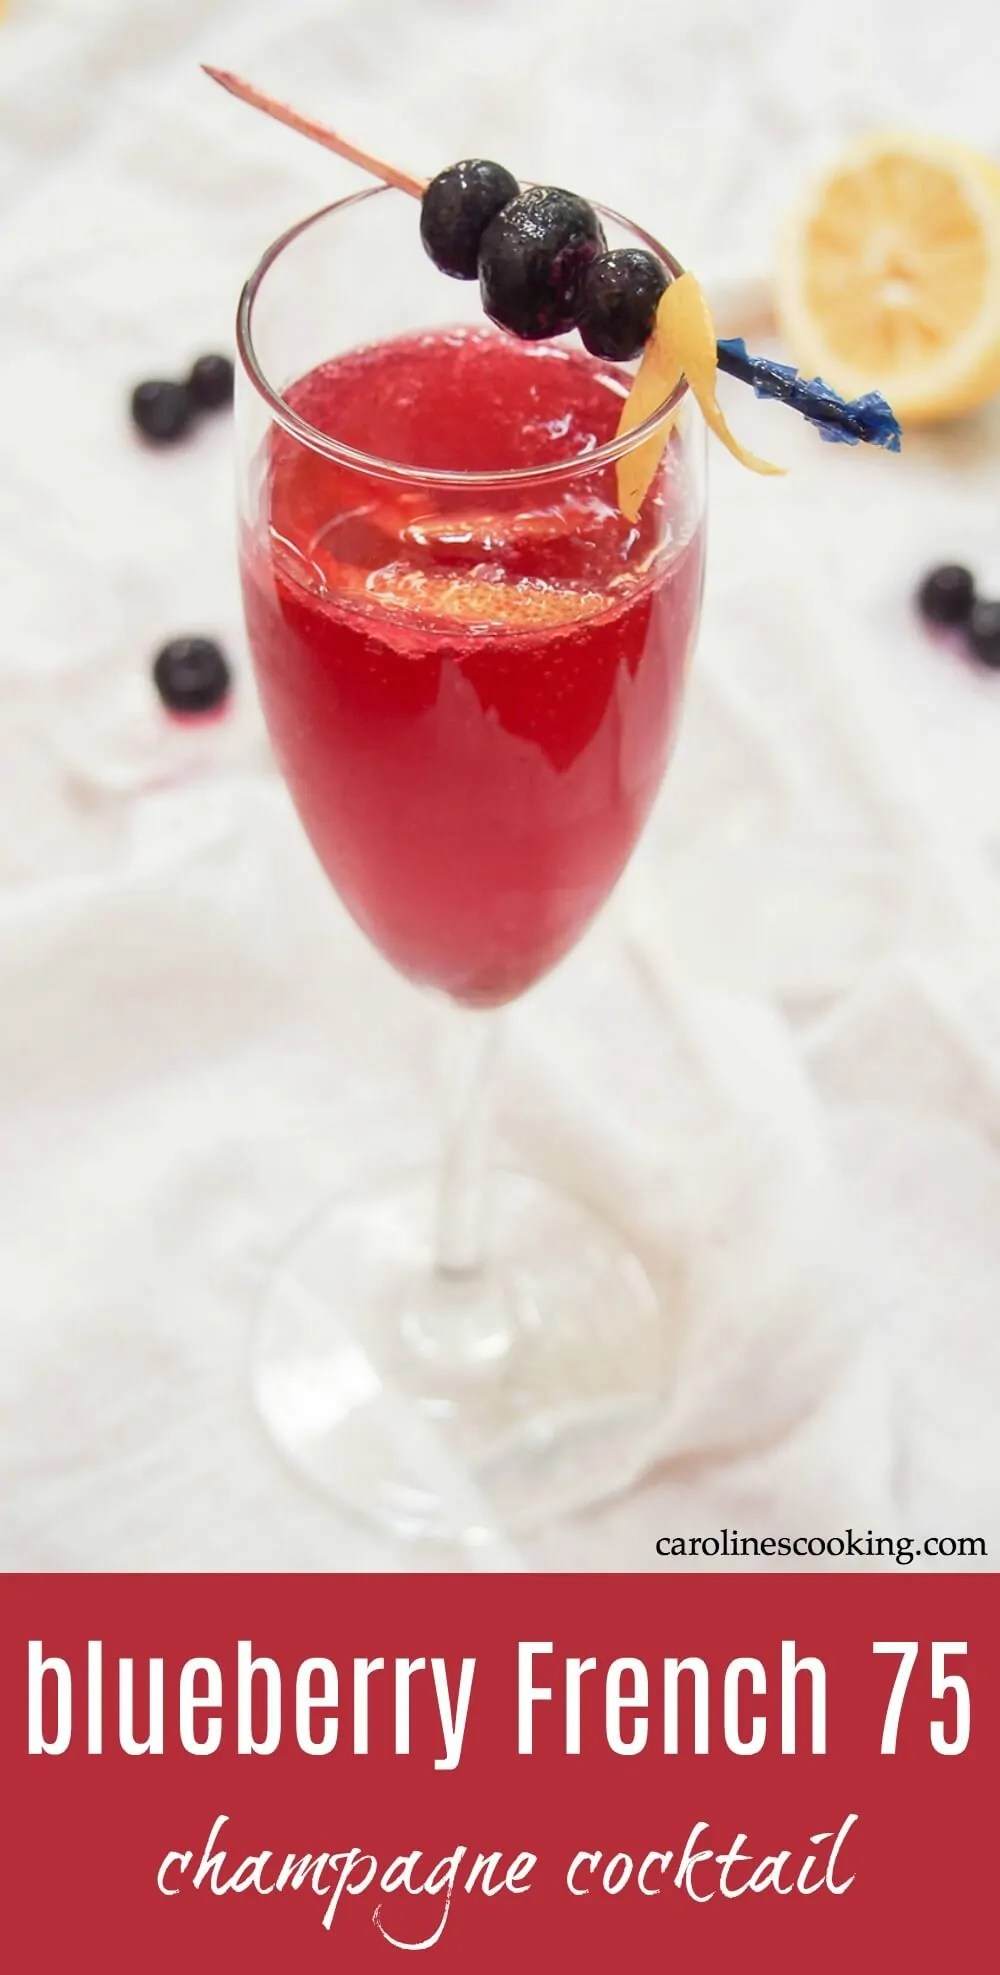 This blueberry French 75 is a simple, colorful twist on a classic champagne cocktail. It's bright, bubbly and begging to be sipped! It would make a great signature cocktail for a party, but is also easy to make by the glass just because. #cocktail #champagne #blueberrycocktail #champagnecocktail